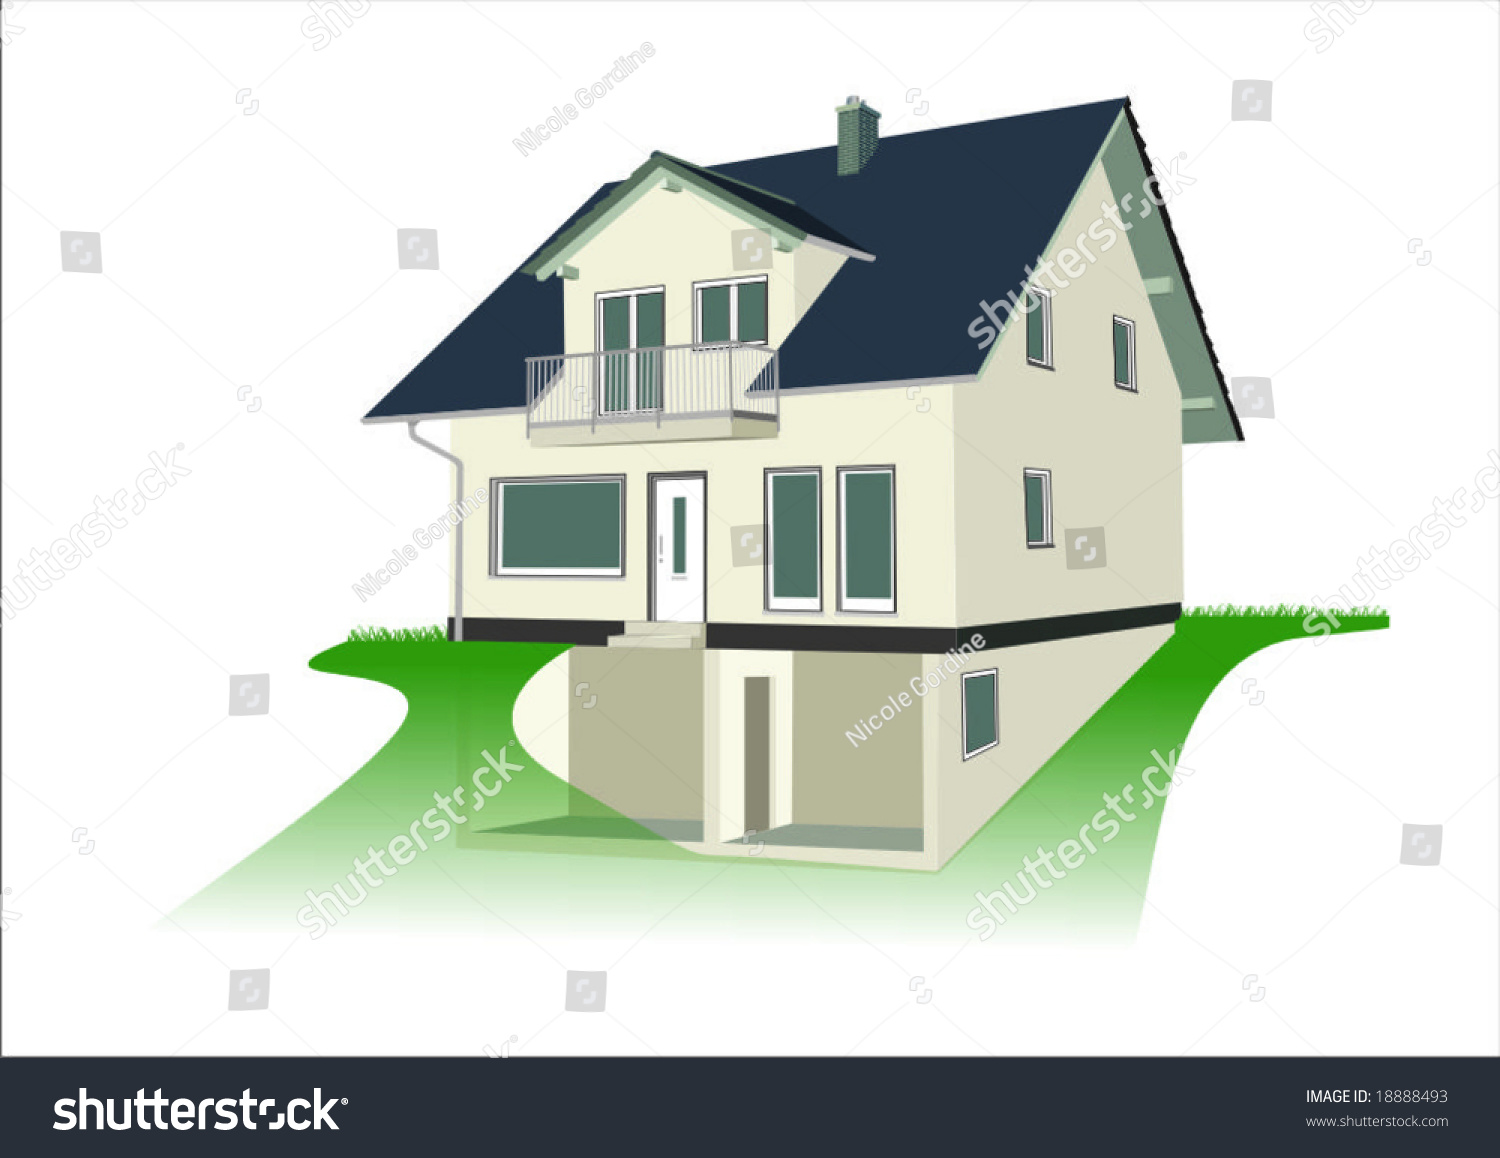 clipart house shutters - photo #48